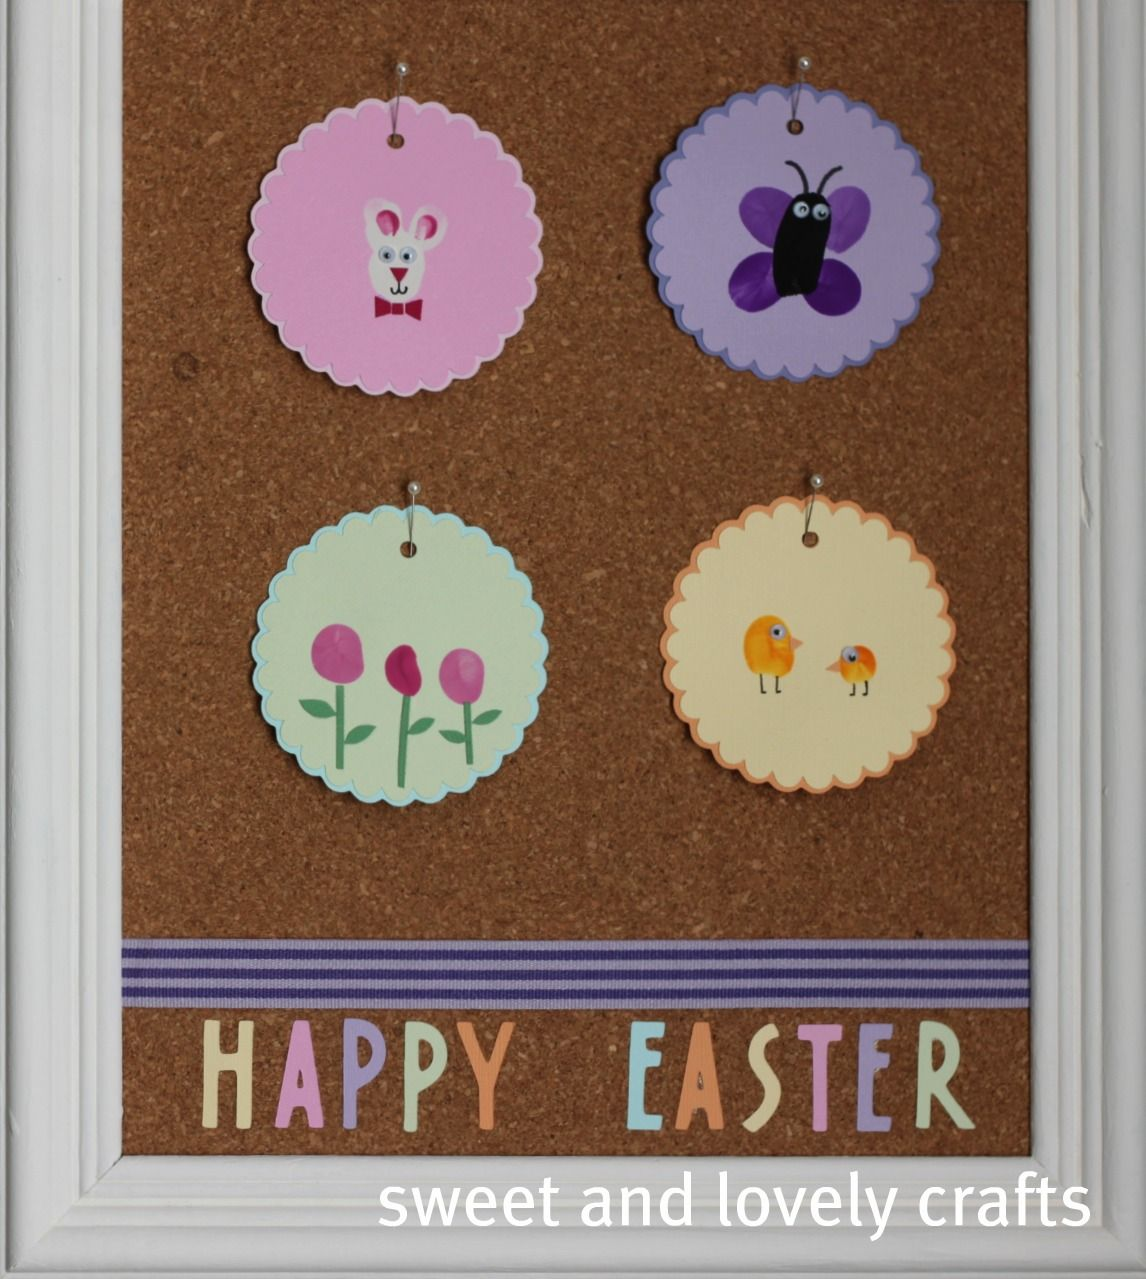 sweet and lovely crafts: Easter Thumbprint Art